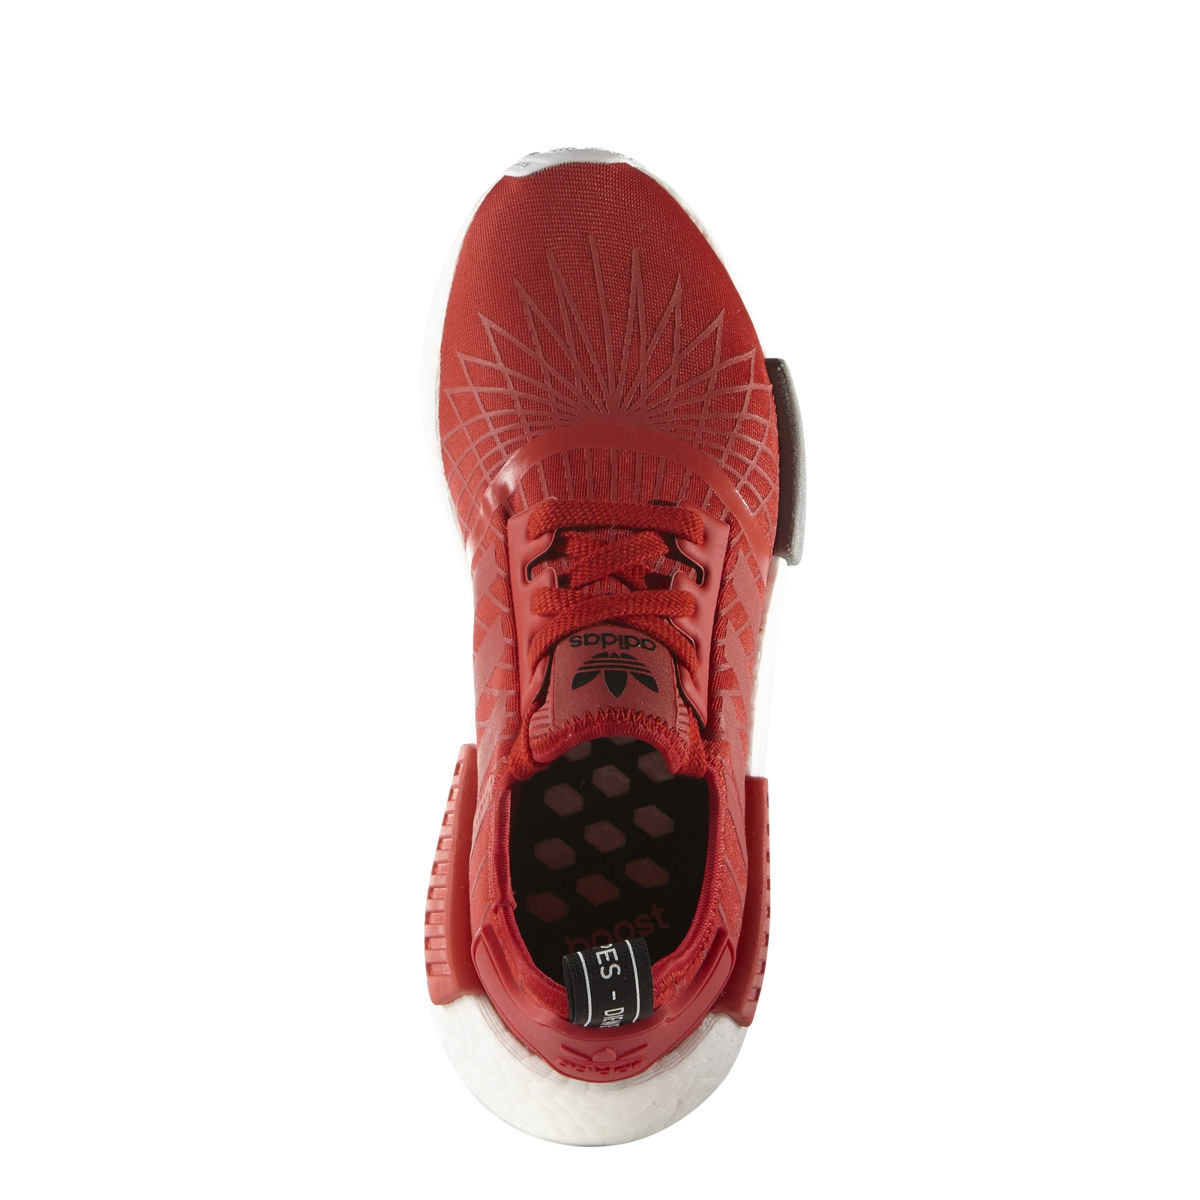 huge selection of bce0b 92ed8 ... Adidas NMD R1 Lush Red Spider Maze Shoes - s79385 ...